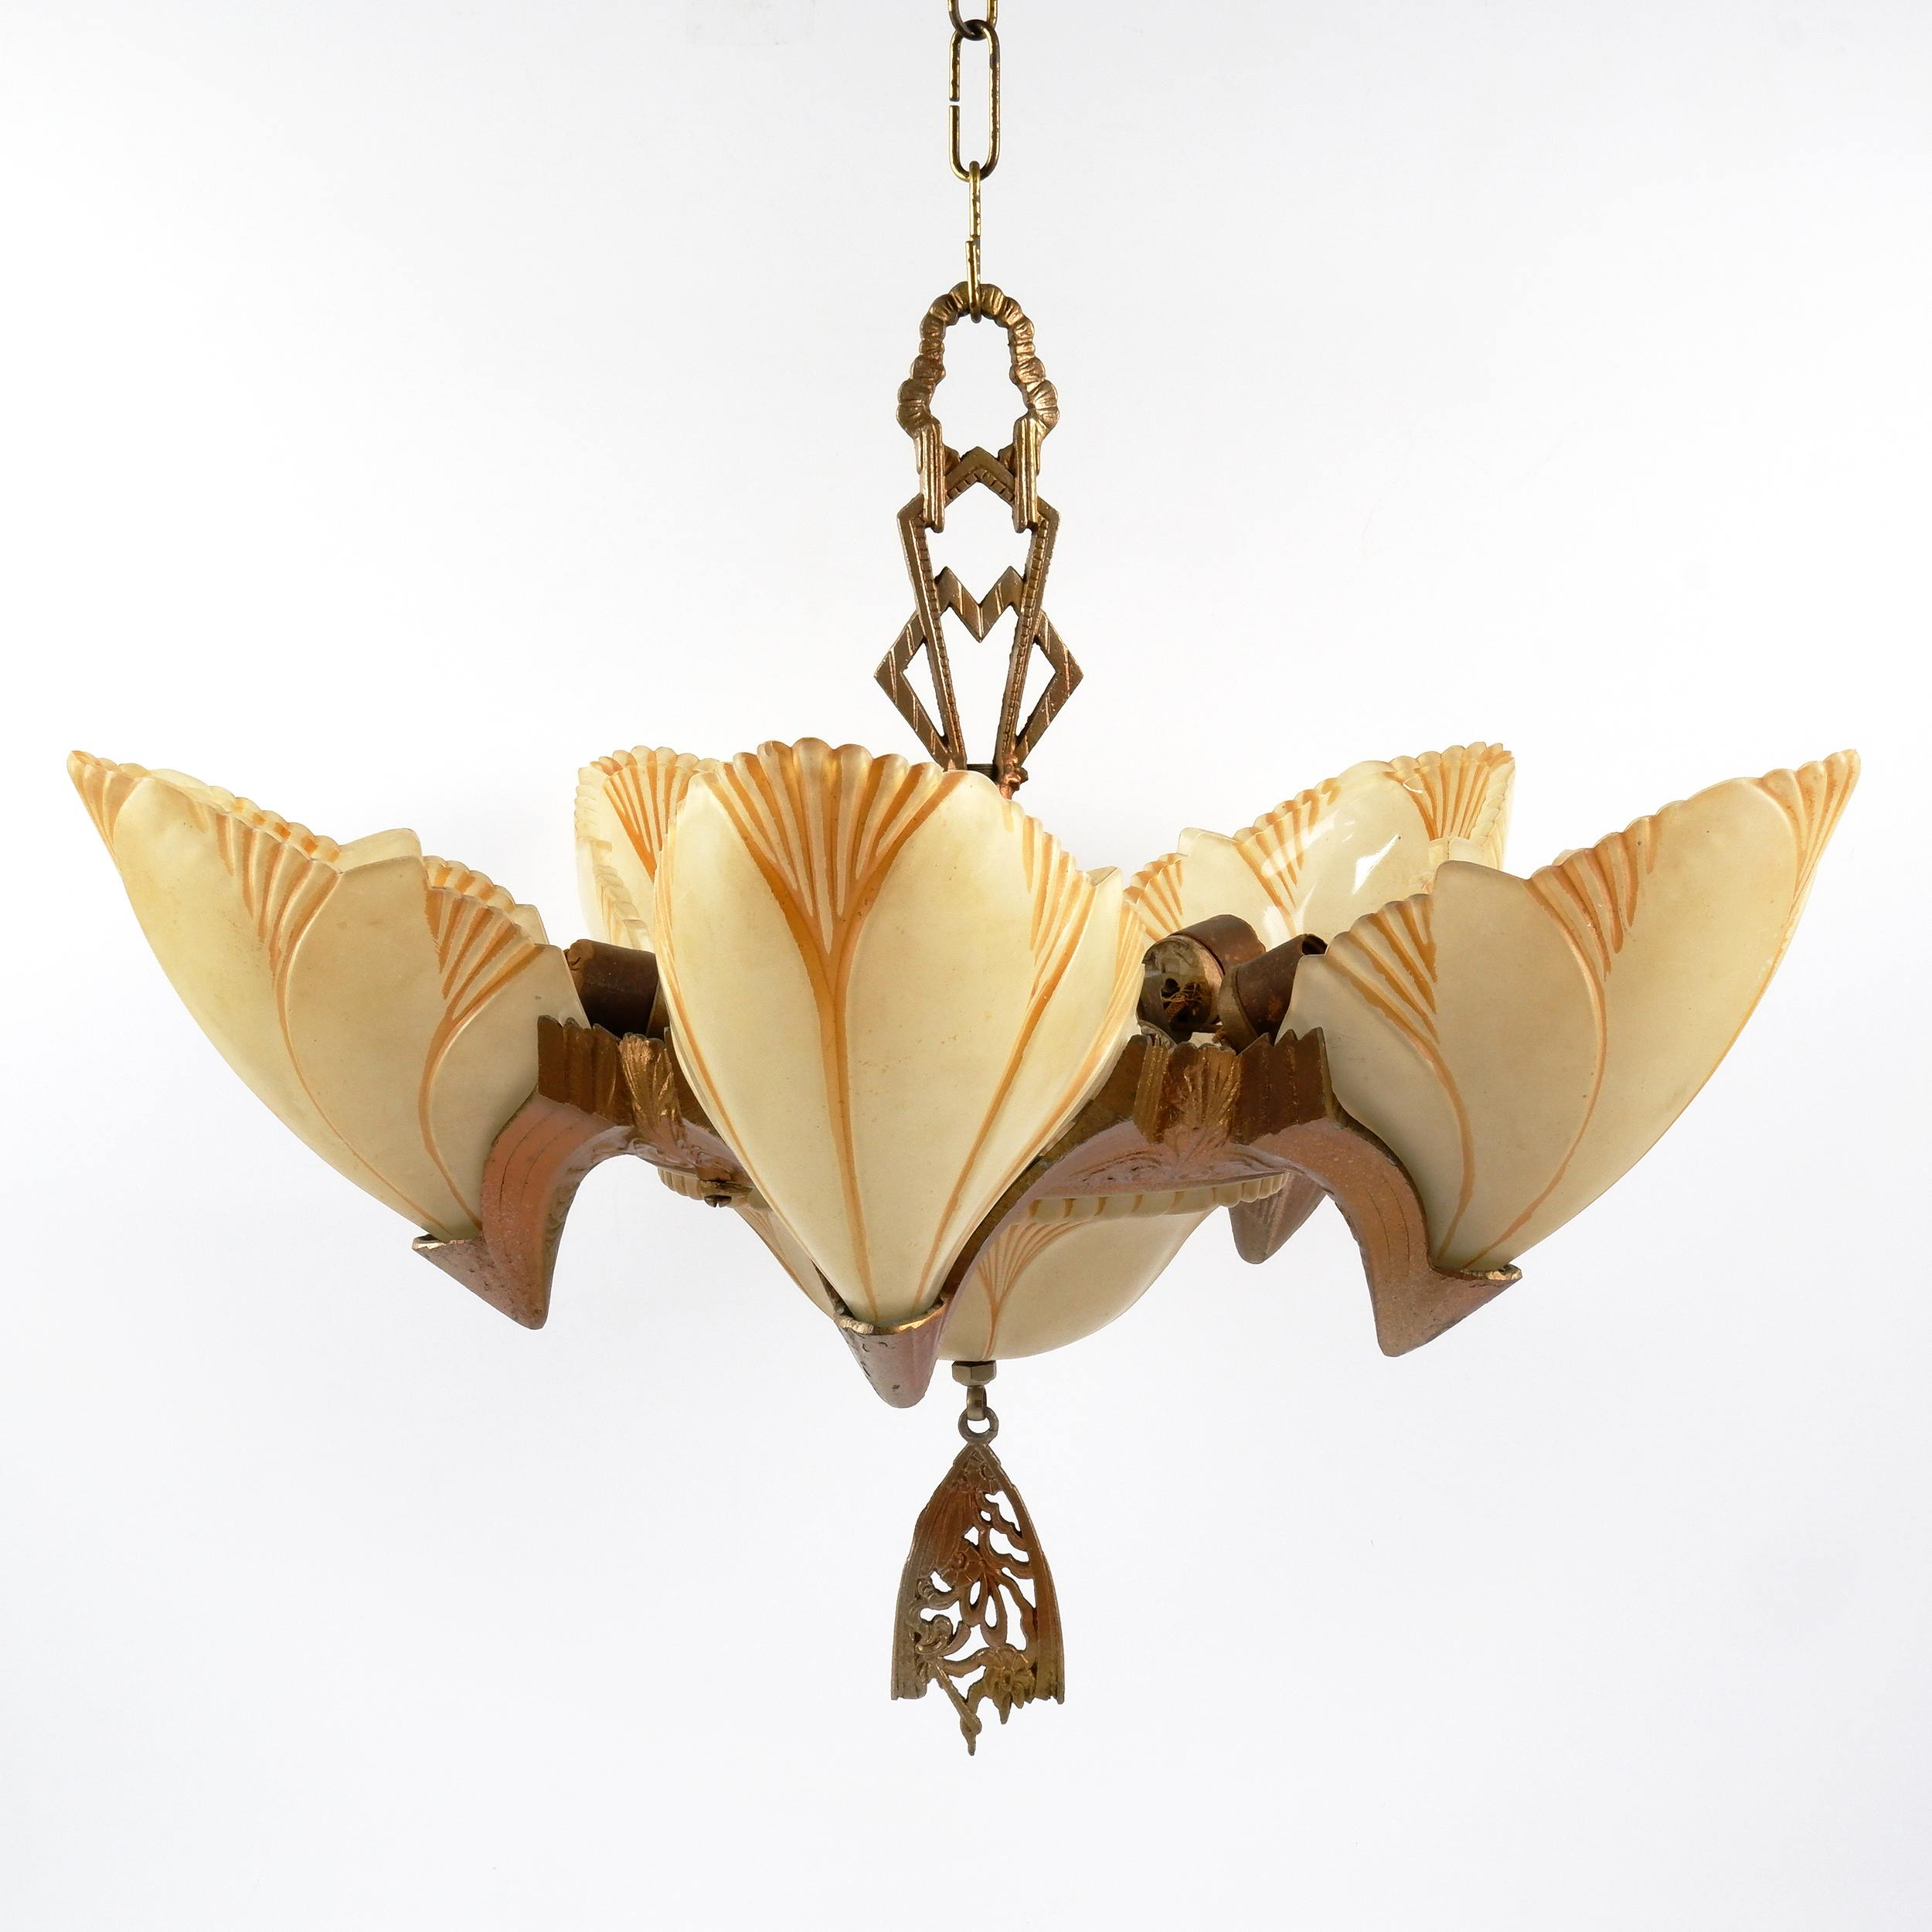 'Art Deco Patinated Metal Batwing Pendant Light Fitting with Five Slipper Glass Shades, Circa 1930s'